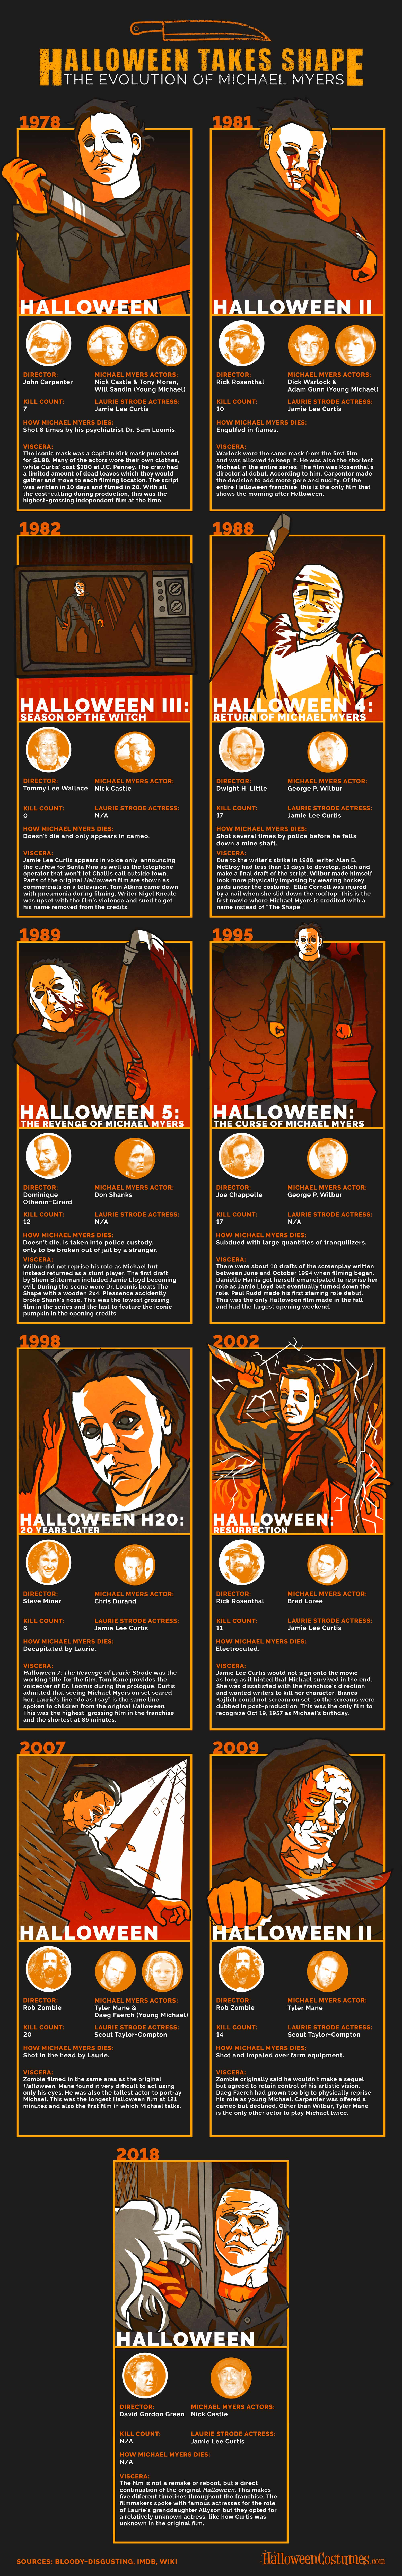 Halloween Takes Shape: The Evolution of Michael Myers